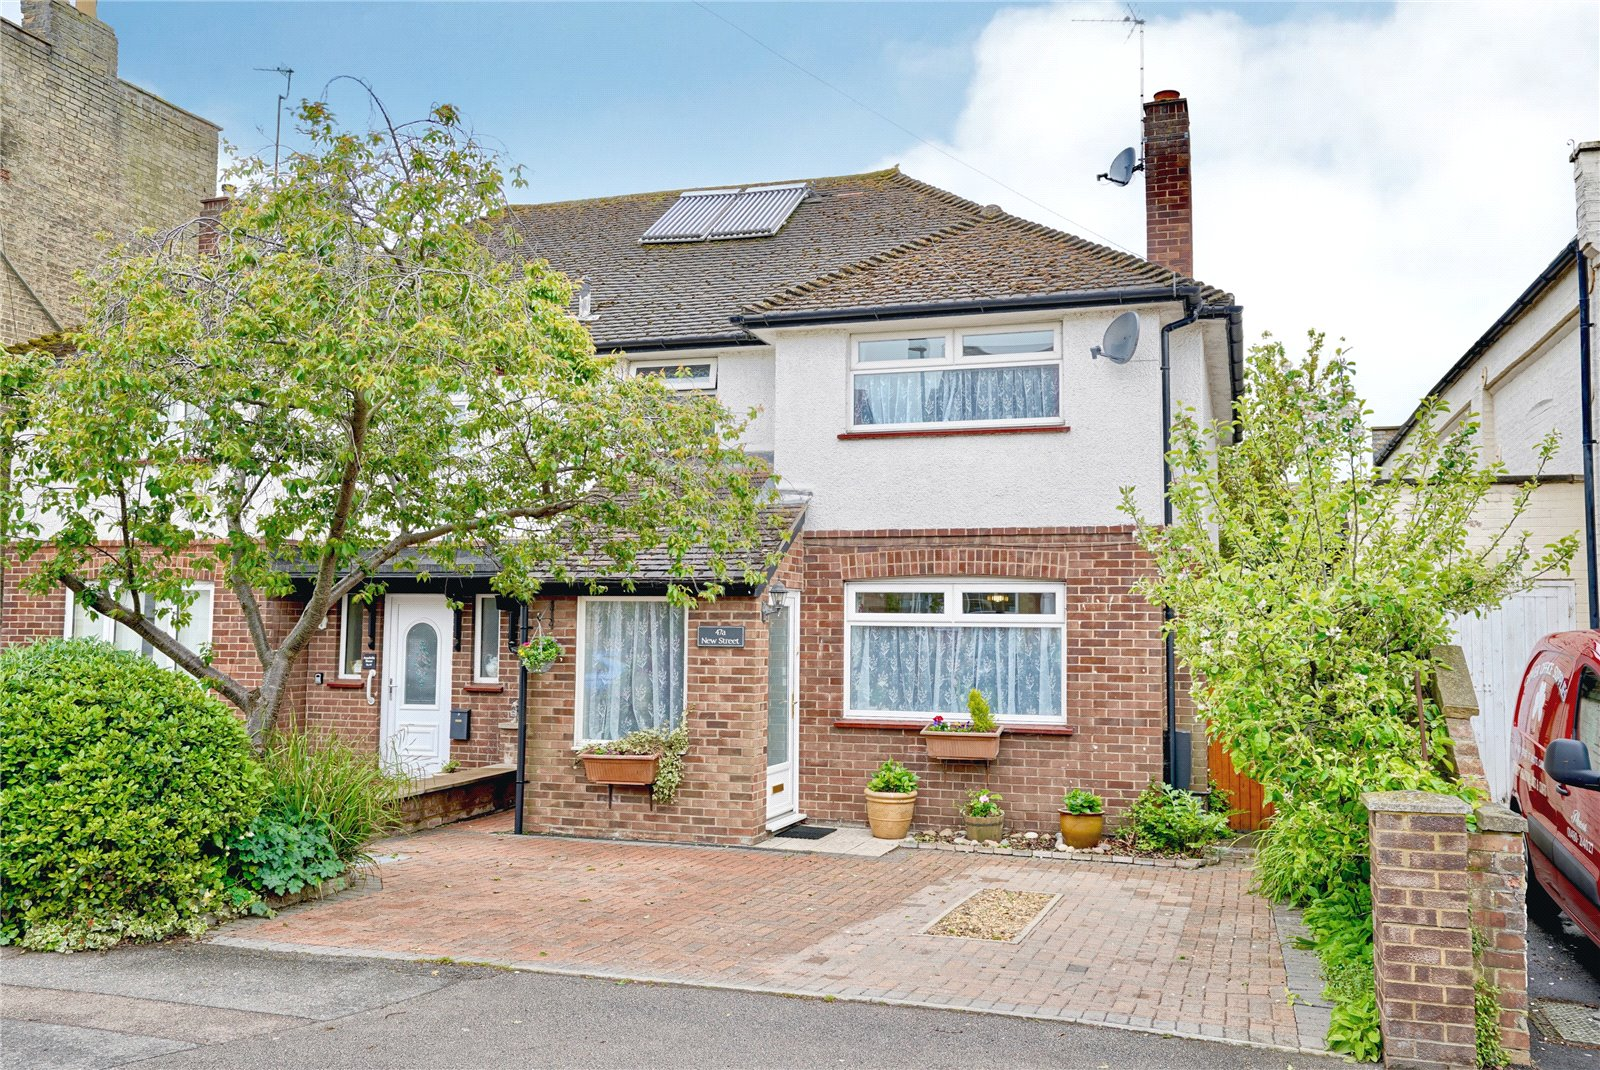 3 bed house for sale in New Street, St. Neots 0